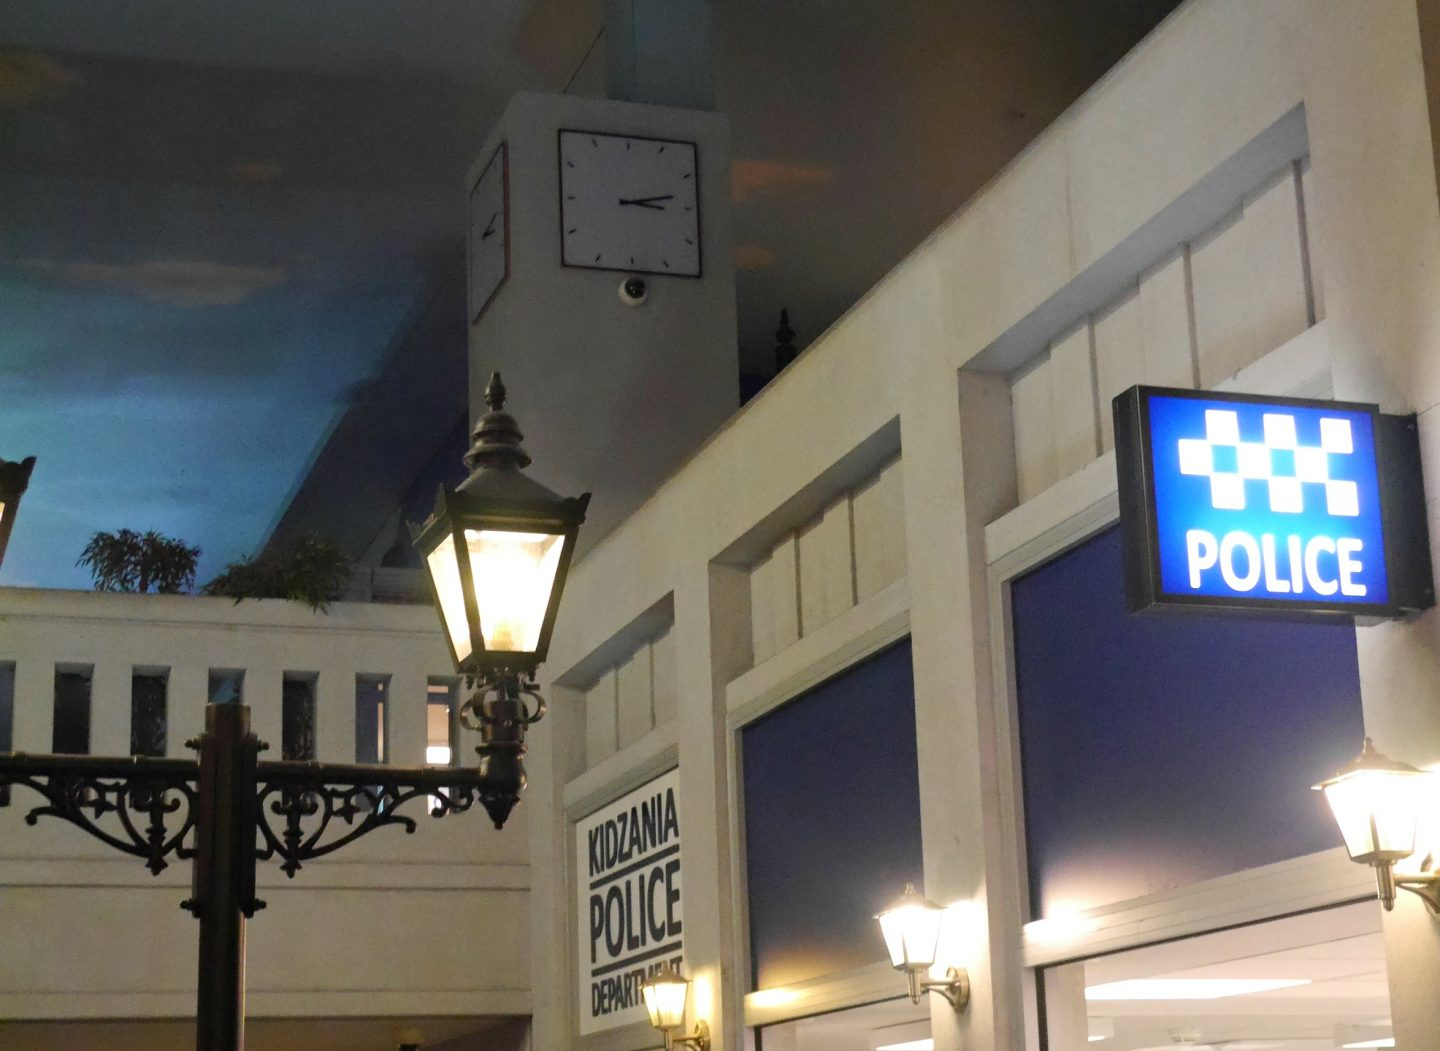 Kidzania London - police station